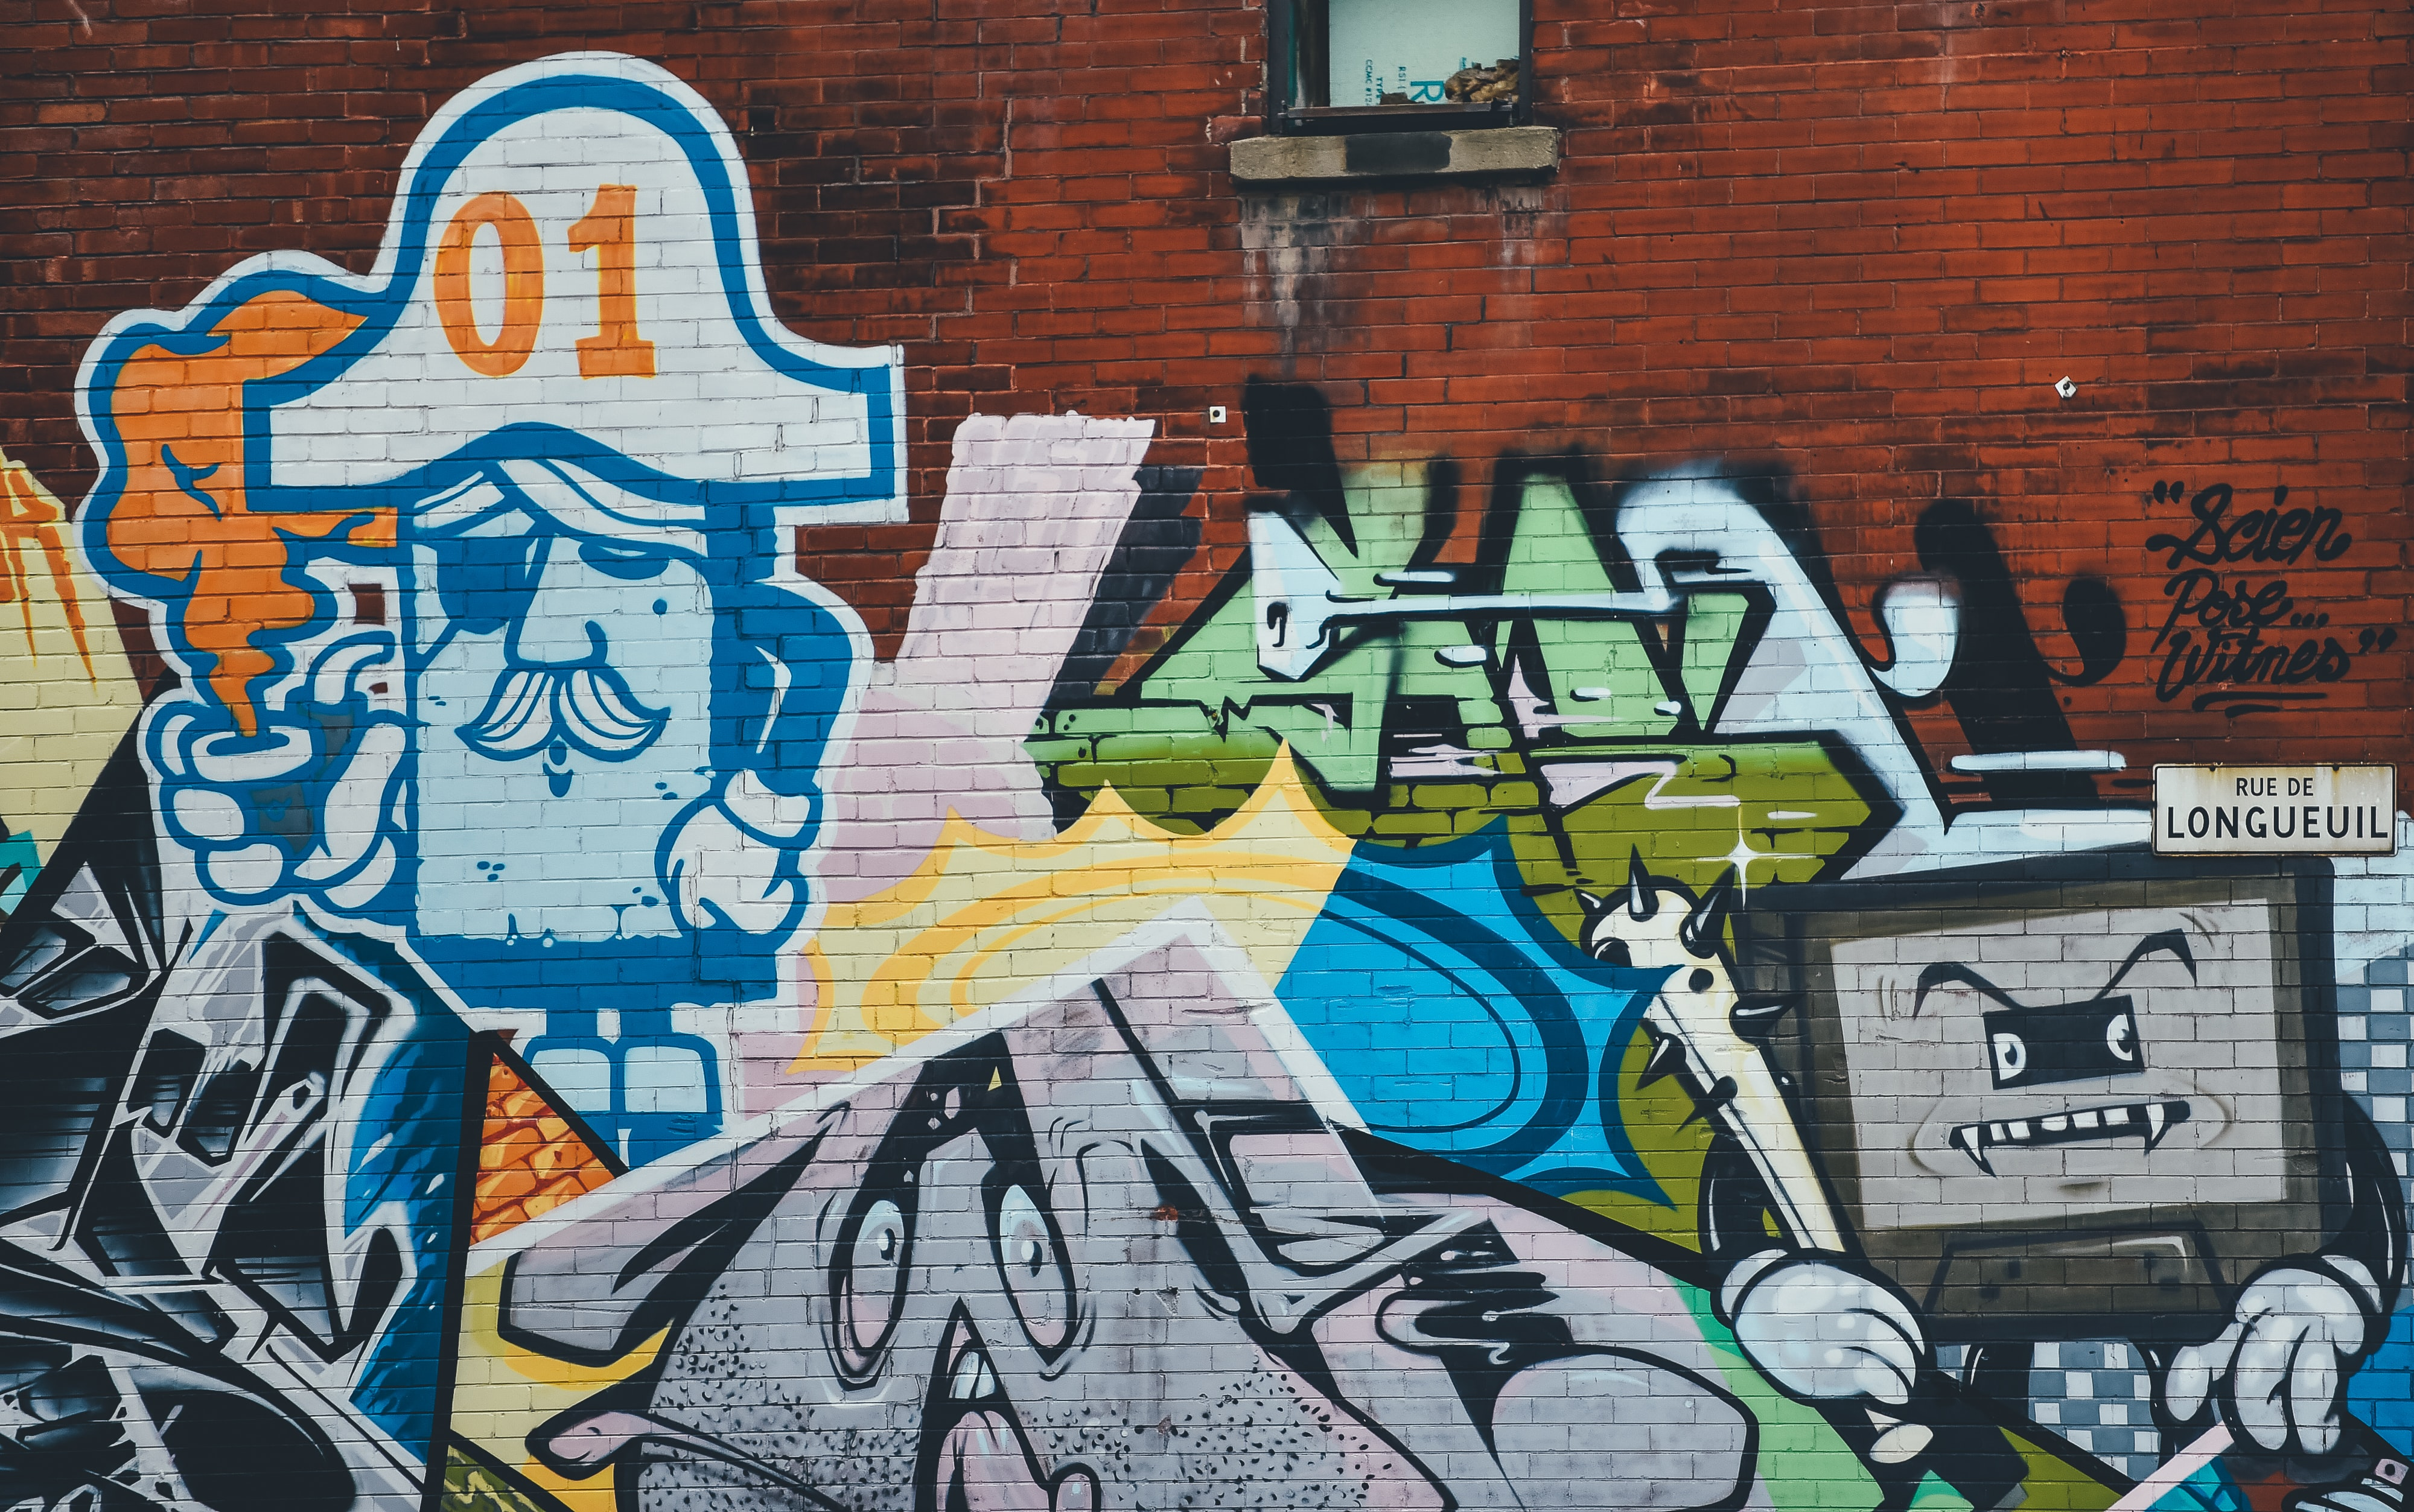 A graffiti painting of a character shaped as a TV.